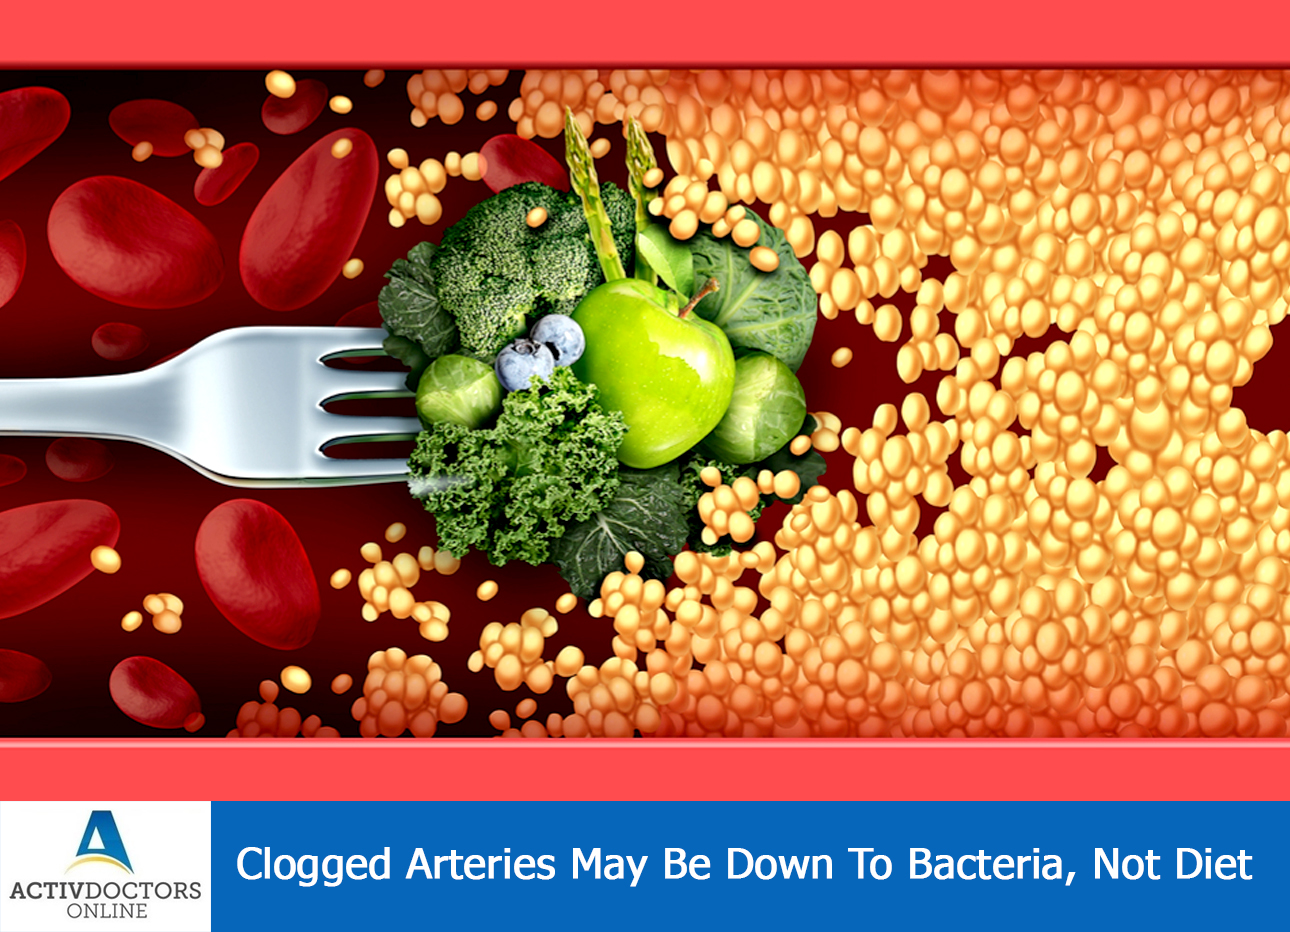 Clogged Arteries May Be Down To Bacteria, Not Diet